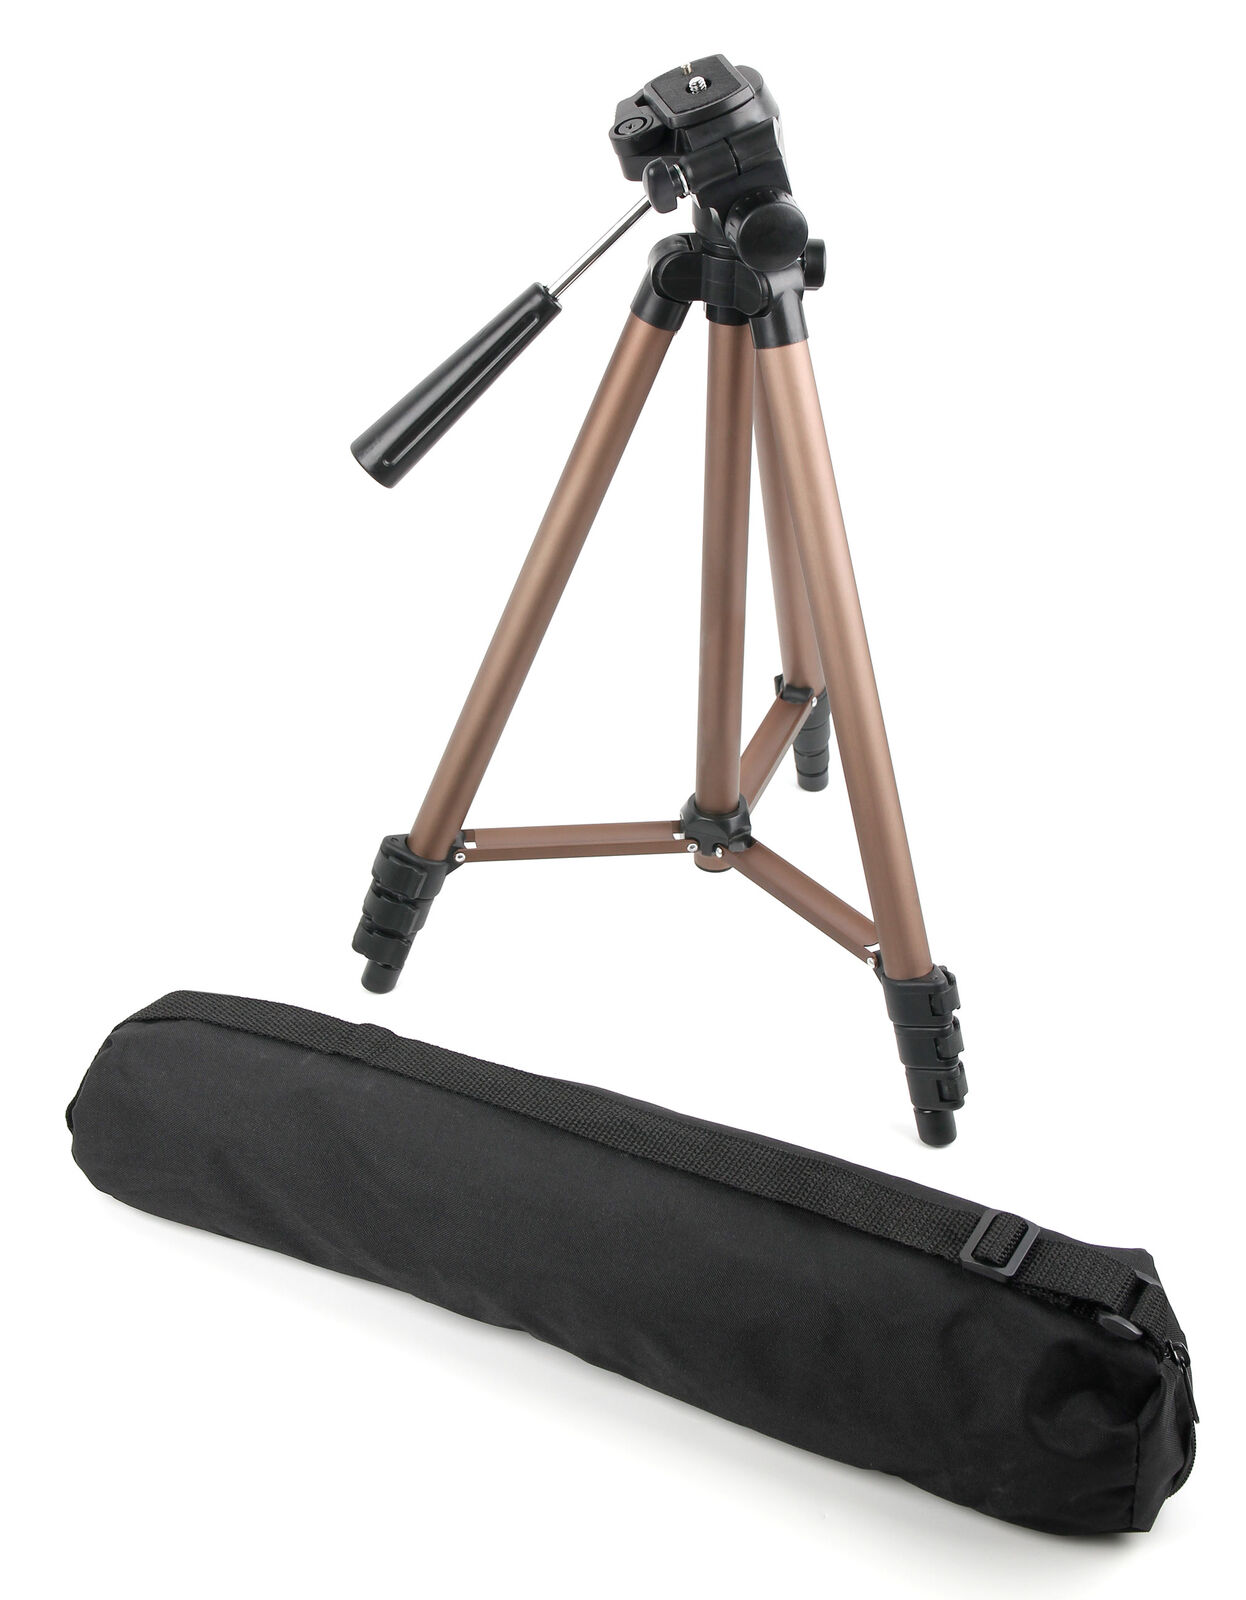 Compact Camera Tripod For Canon Powershot Sx530 Hs Sx610 Hs Sx710 Hs